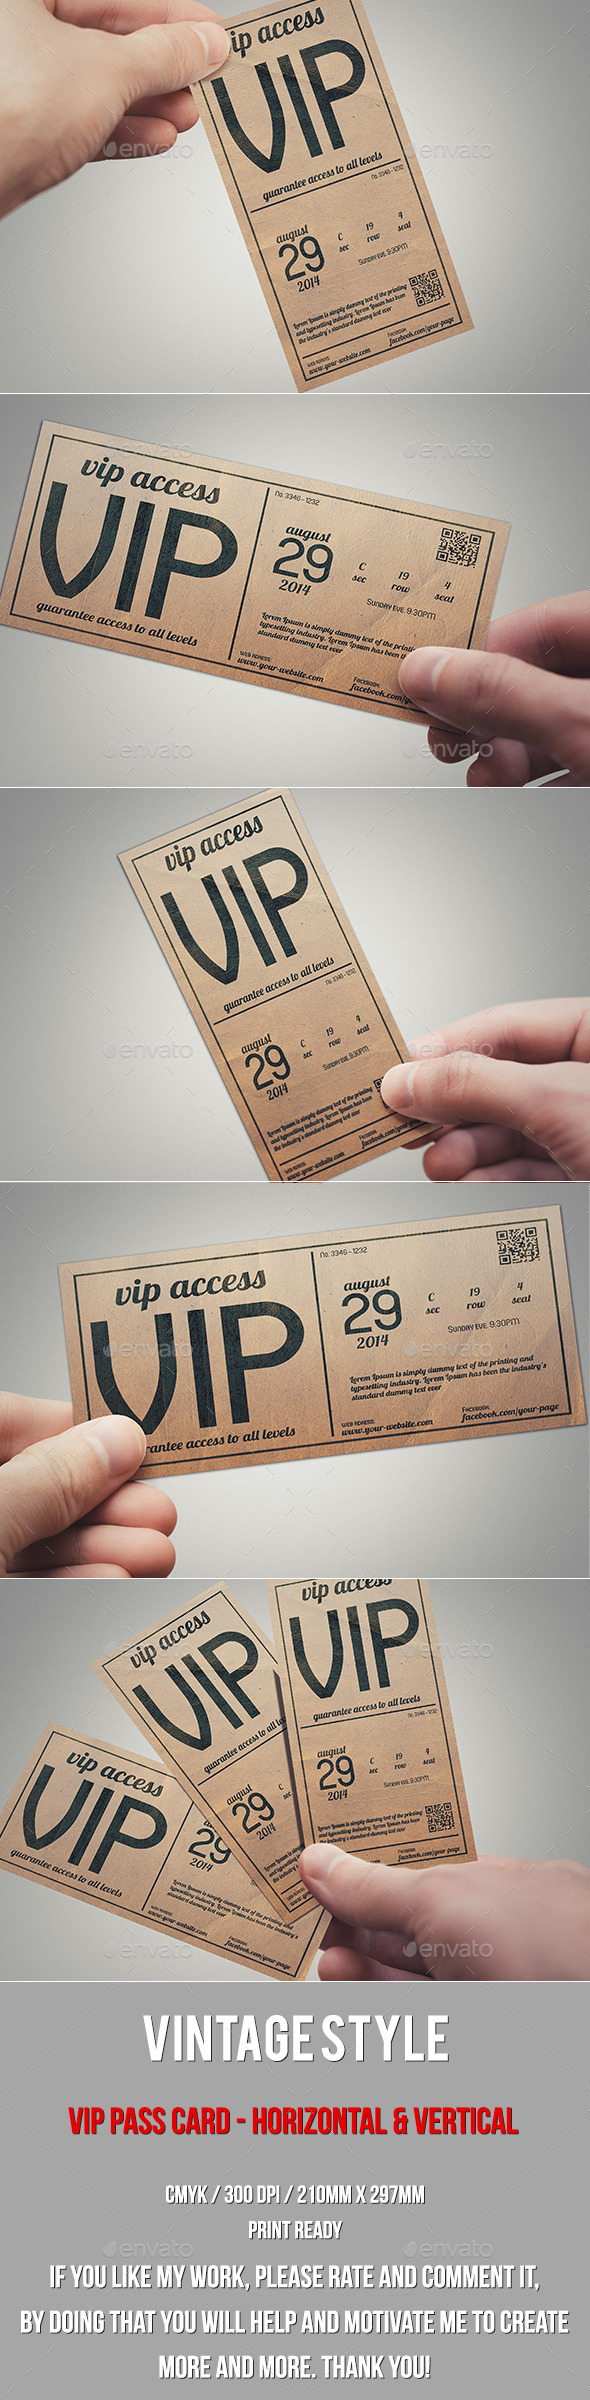 vintage style vip pass card by tzochko graphicriver. Black Bedroom Furniture Sets. Home Design Ideas